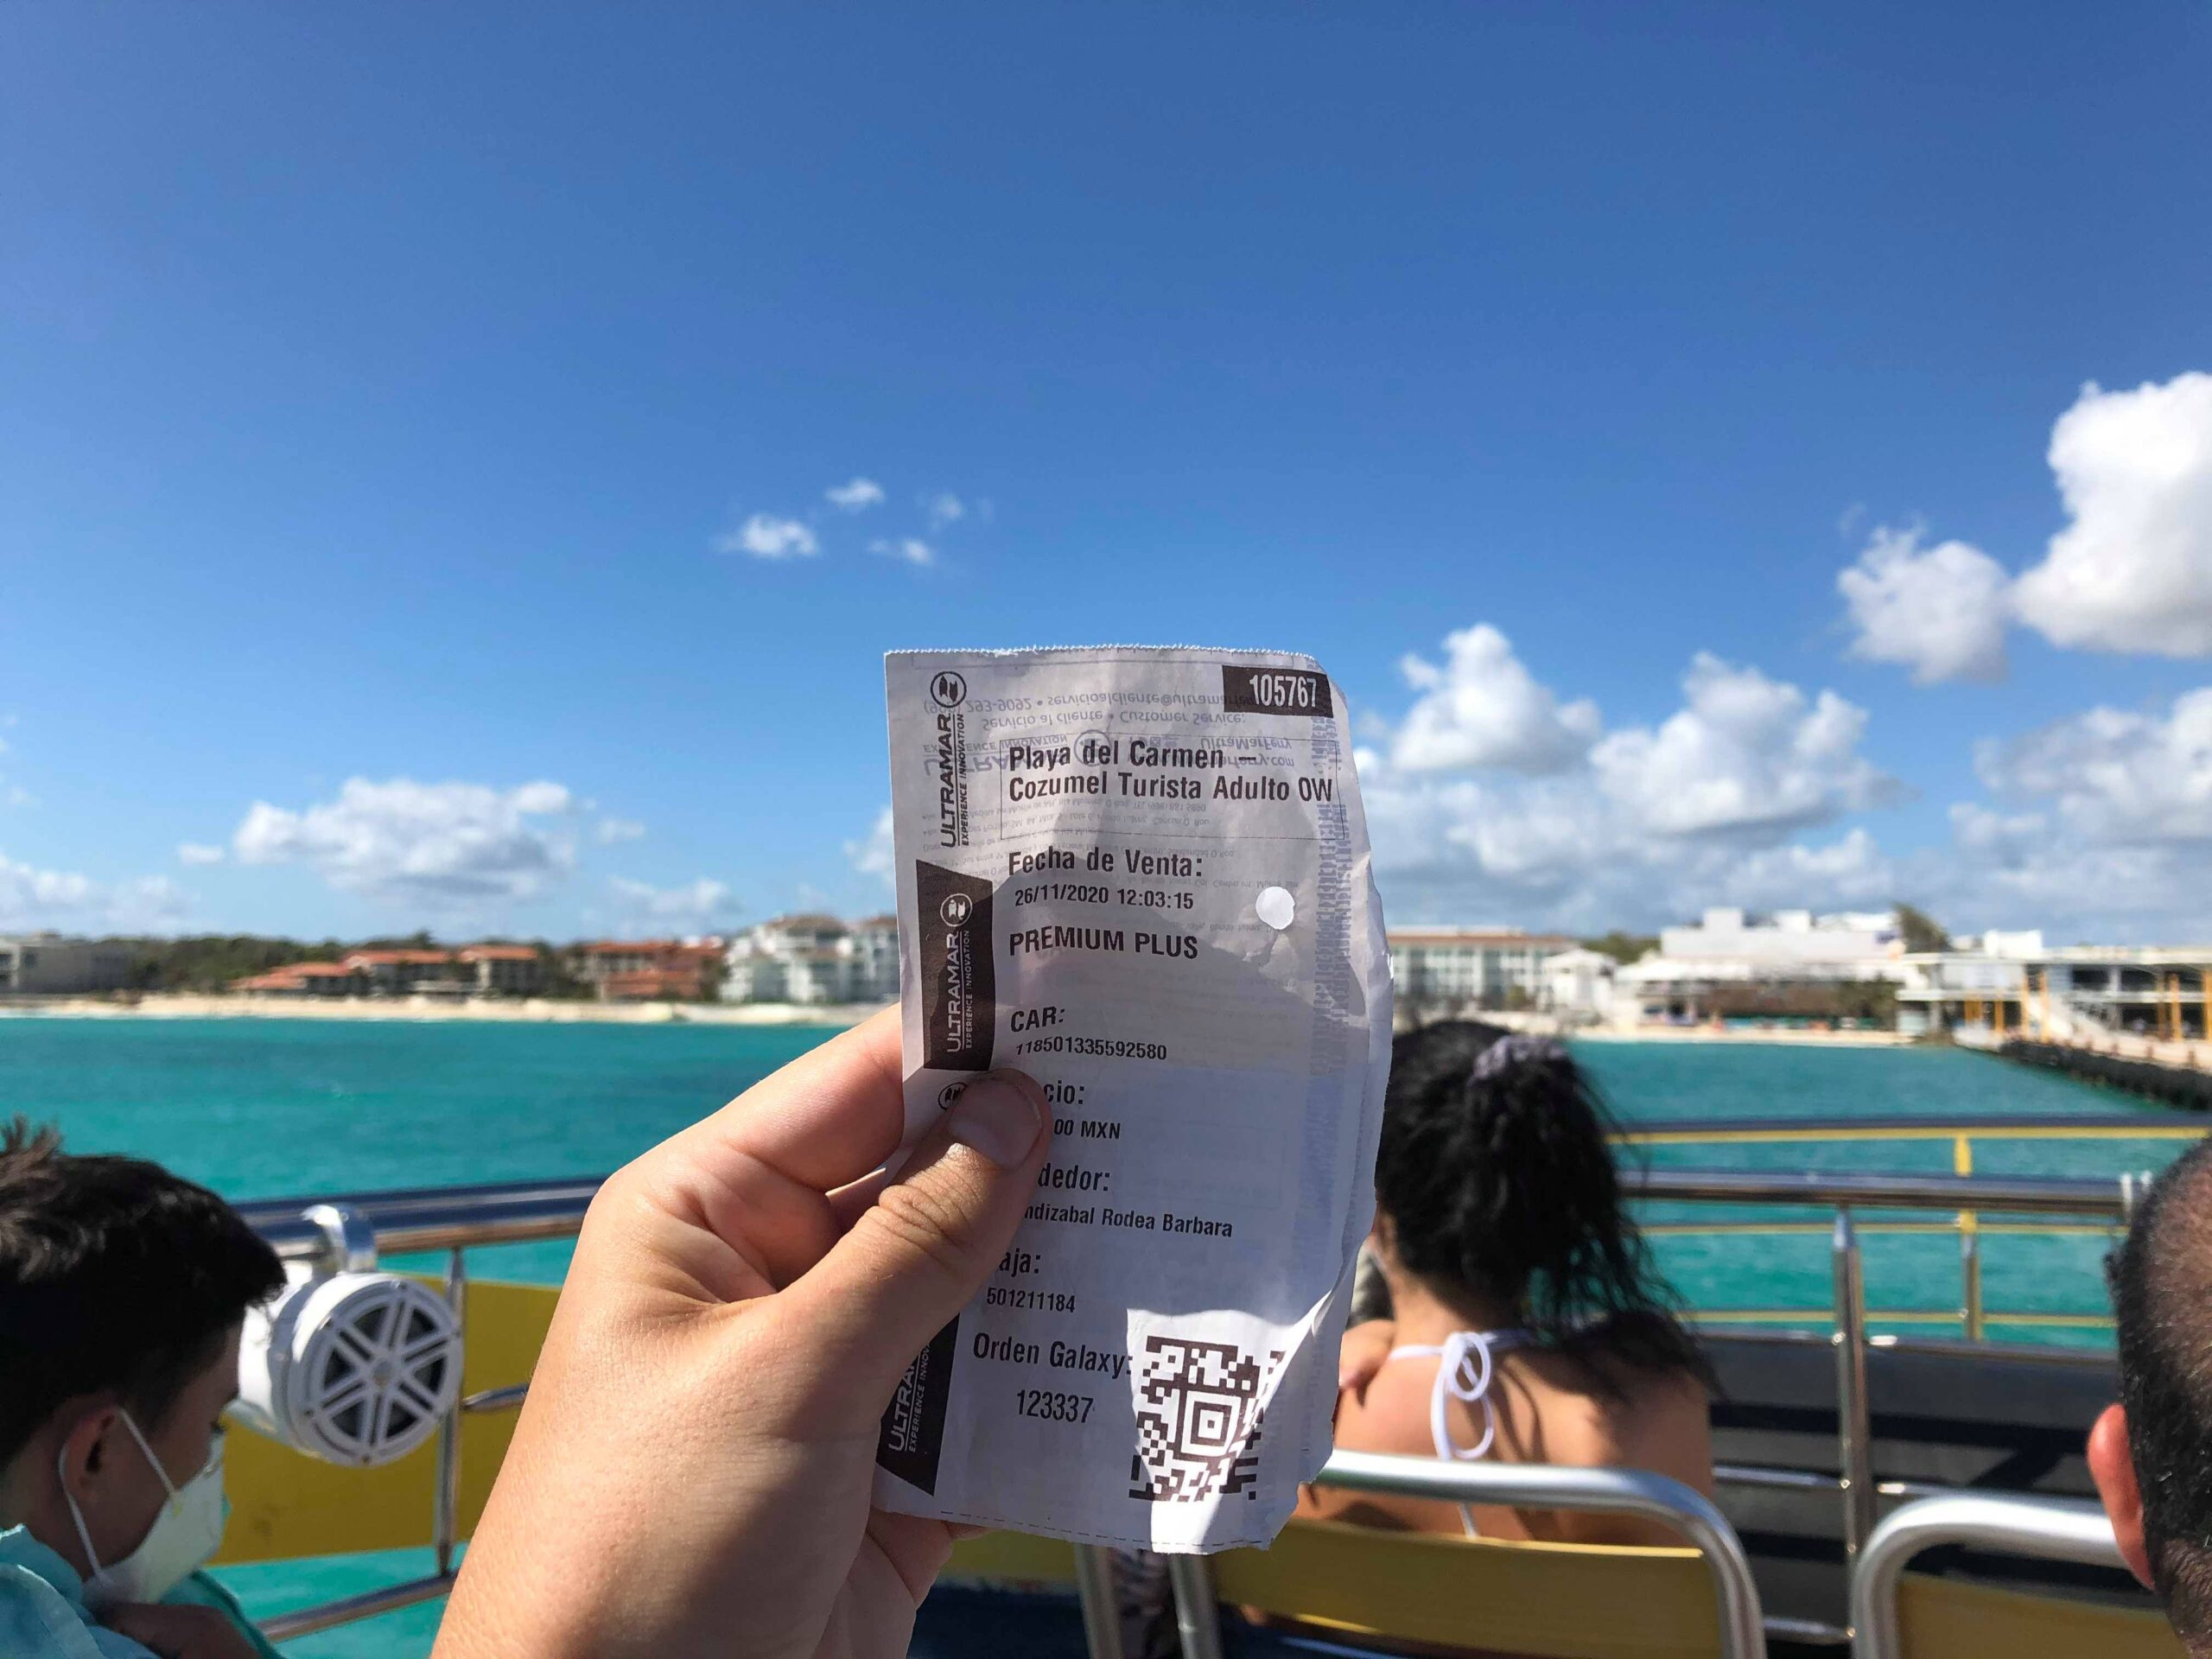 catching a ferry to cozumel